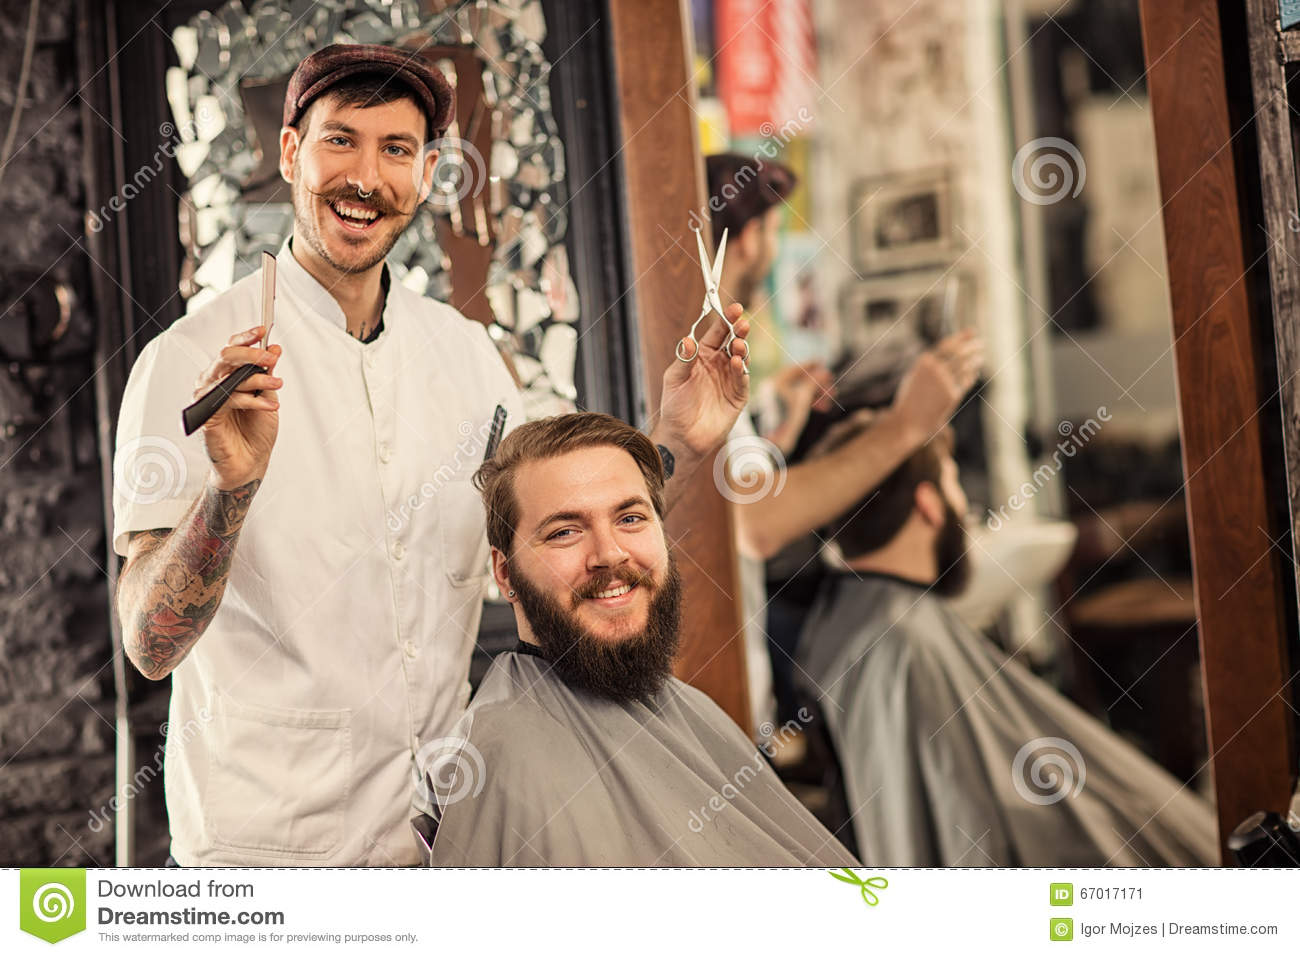 Barber Time : Great Time At Barbershop With Barber Stock Photo - Image: 67017171